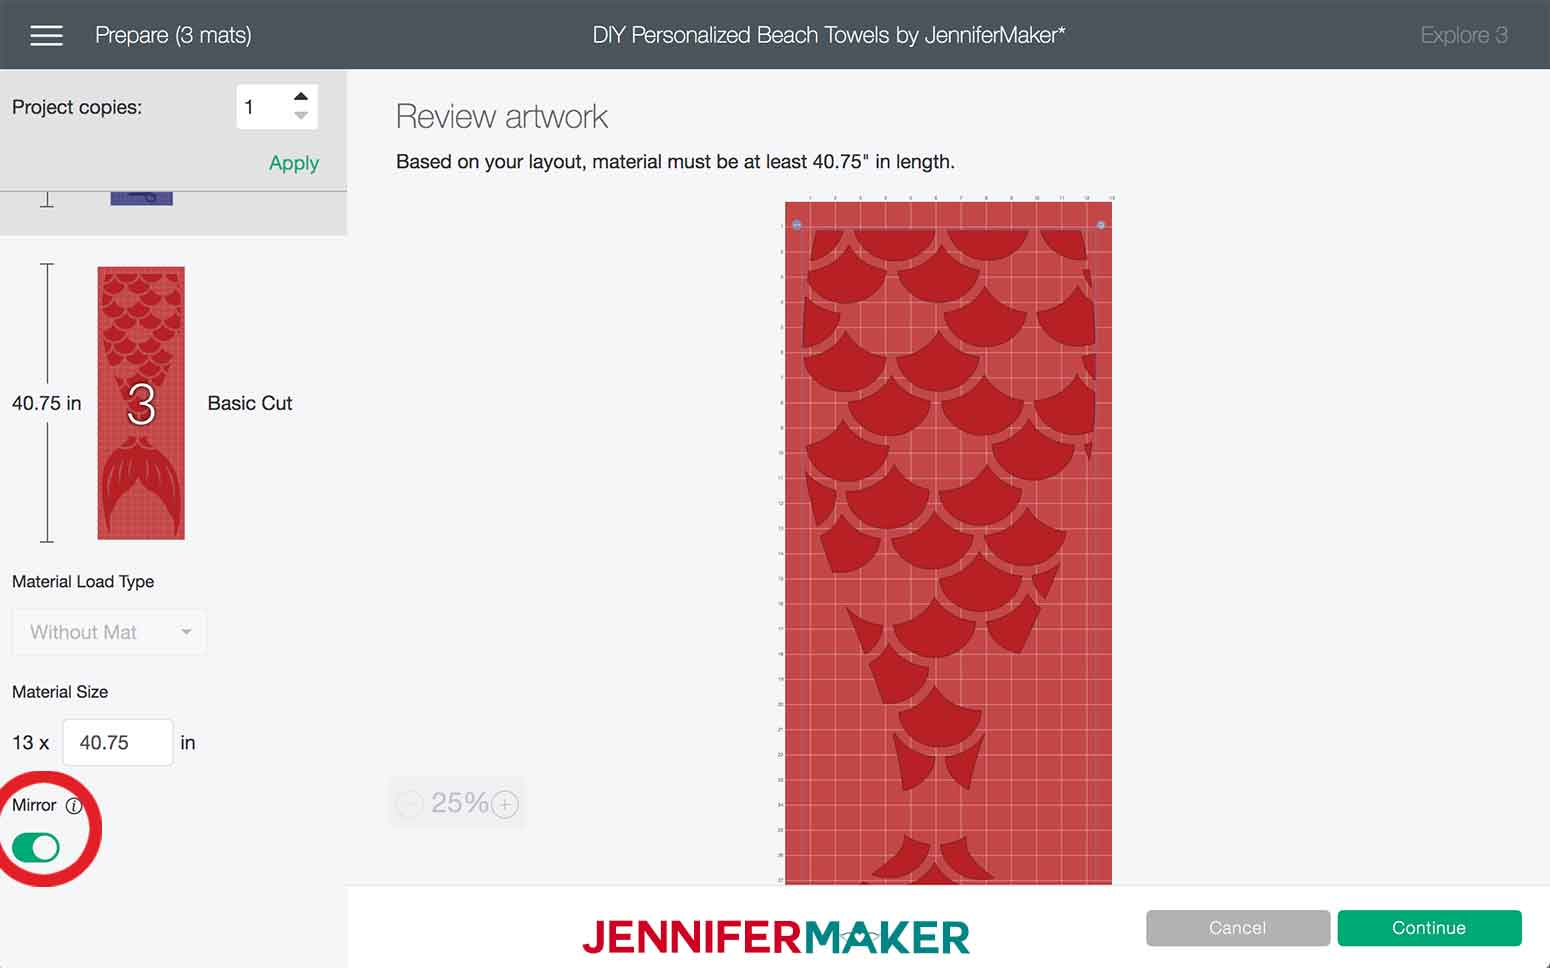 Mirroring layer in Design Space to make the Mermaid DIY Personalized Beach Towels